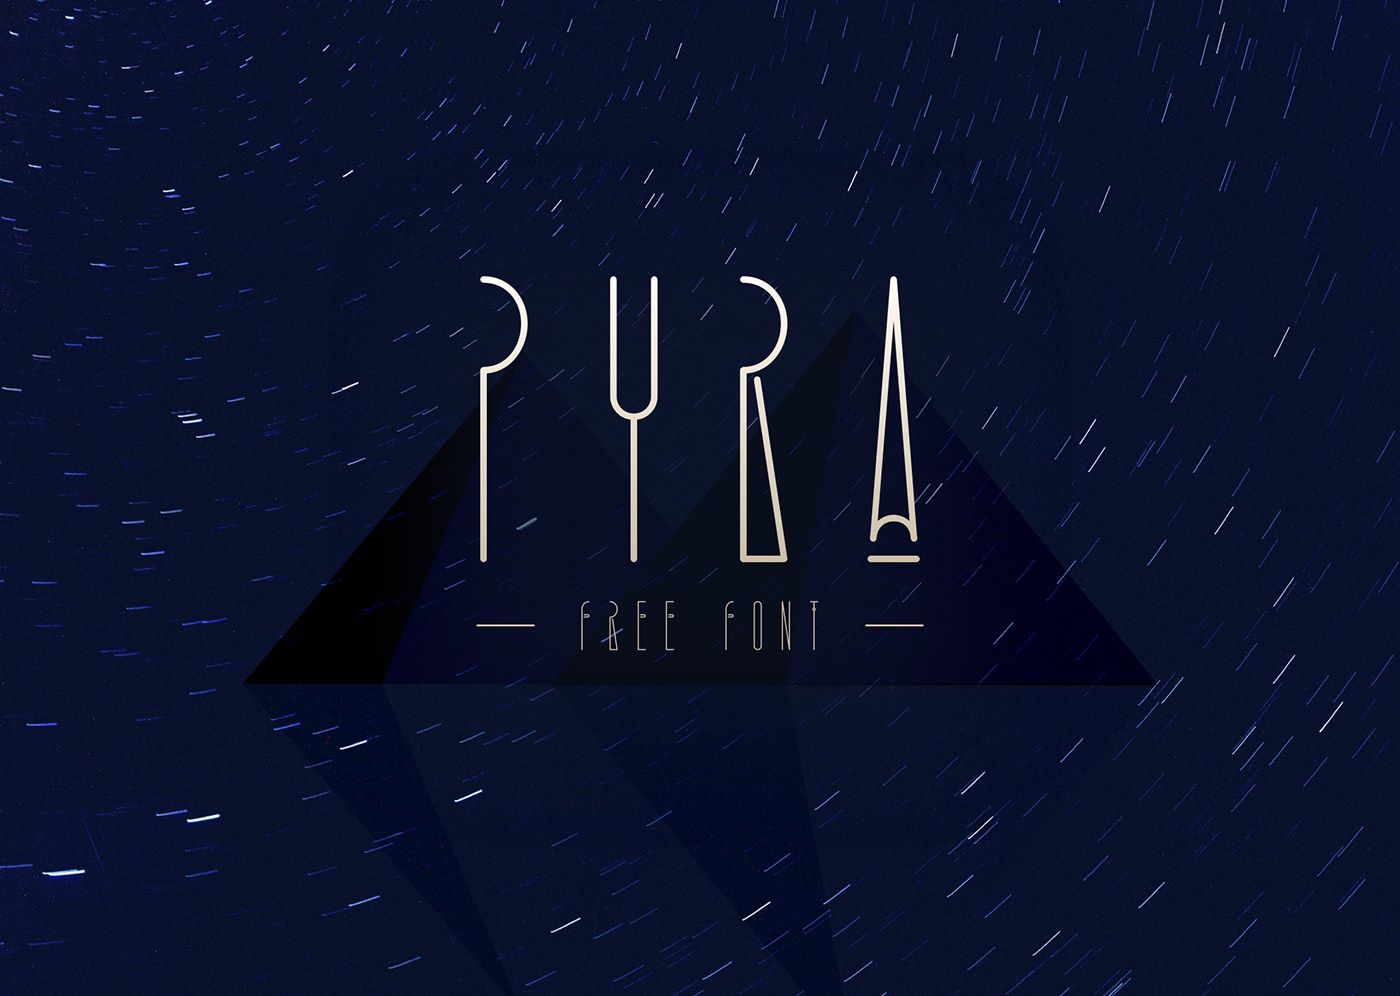 PYRA Free Font - decorative-display